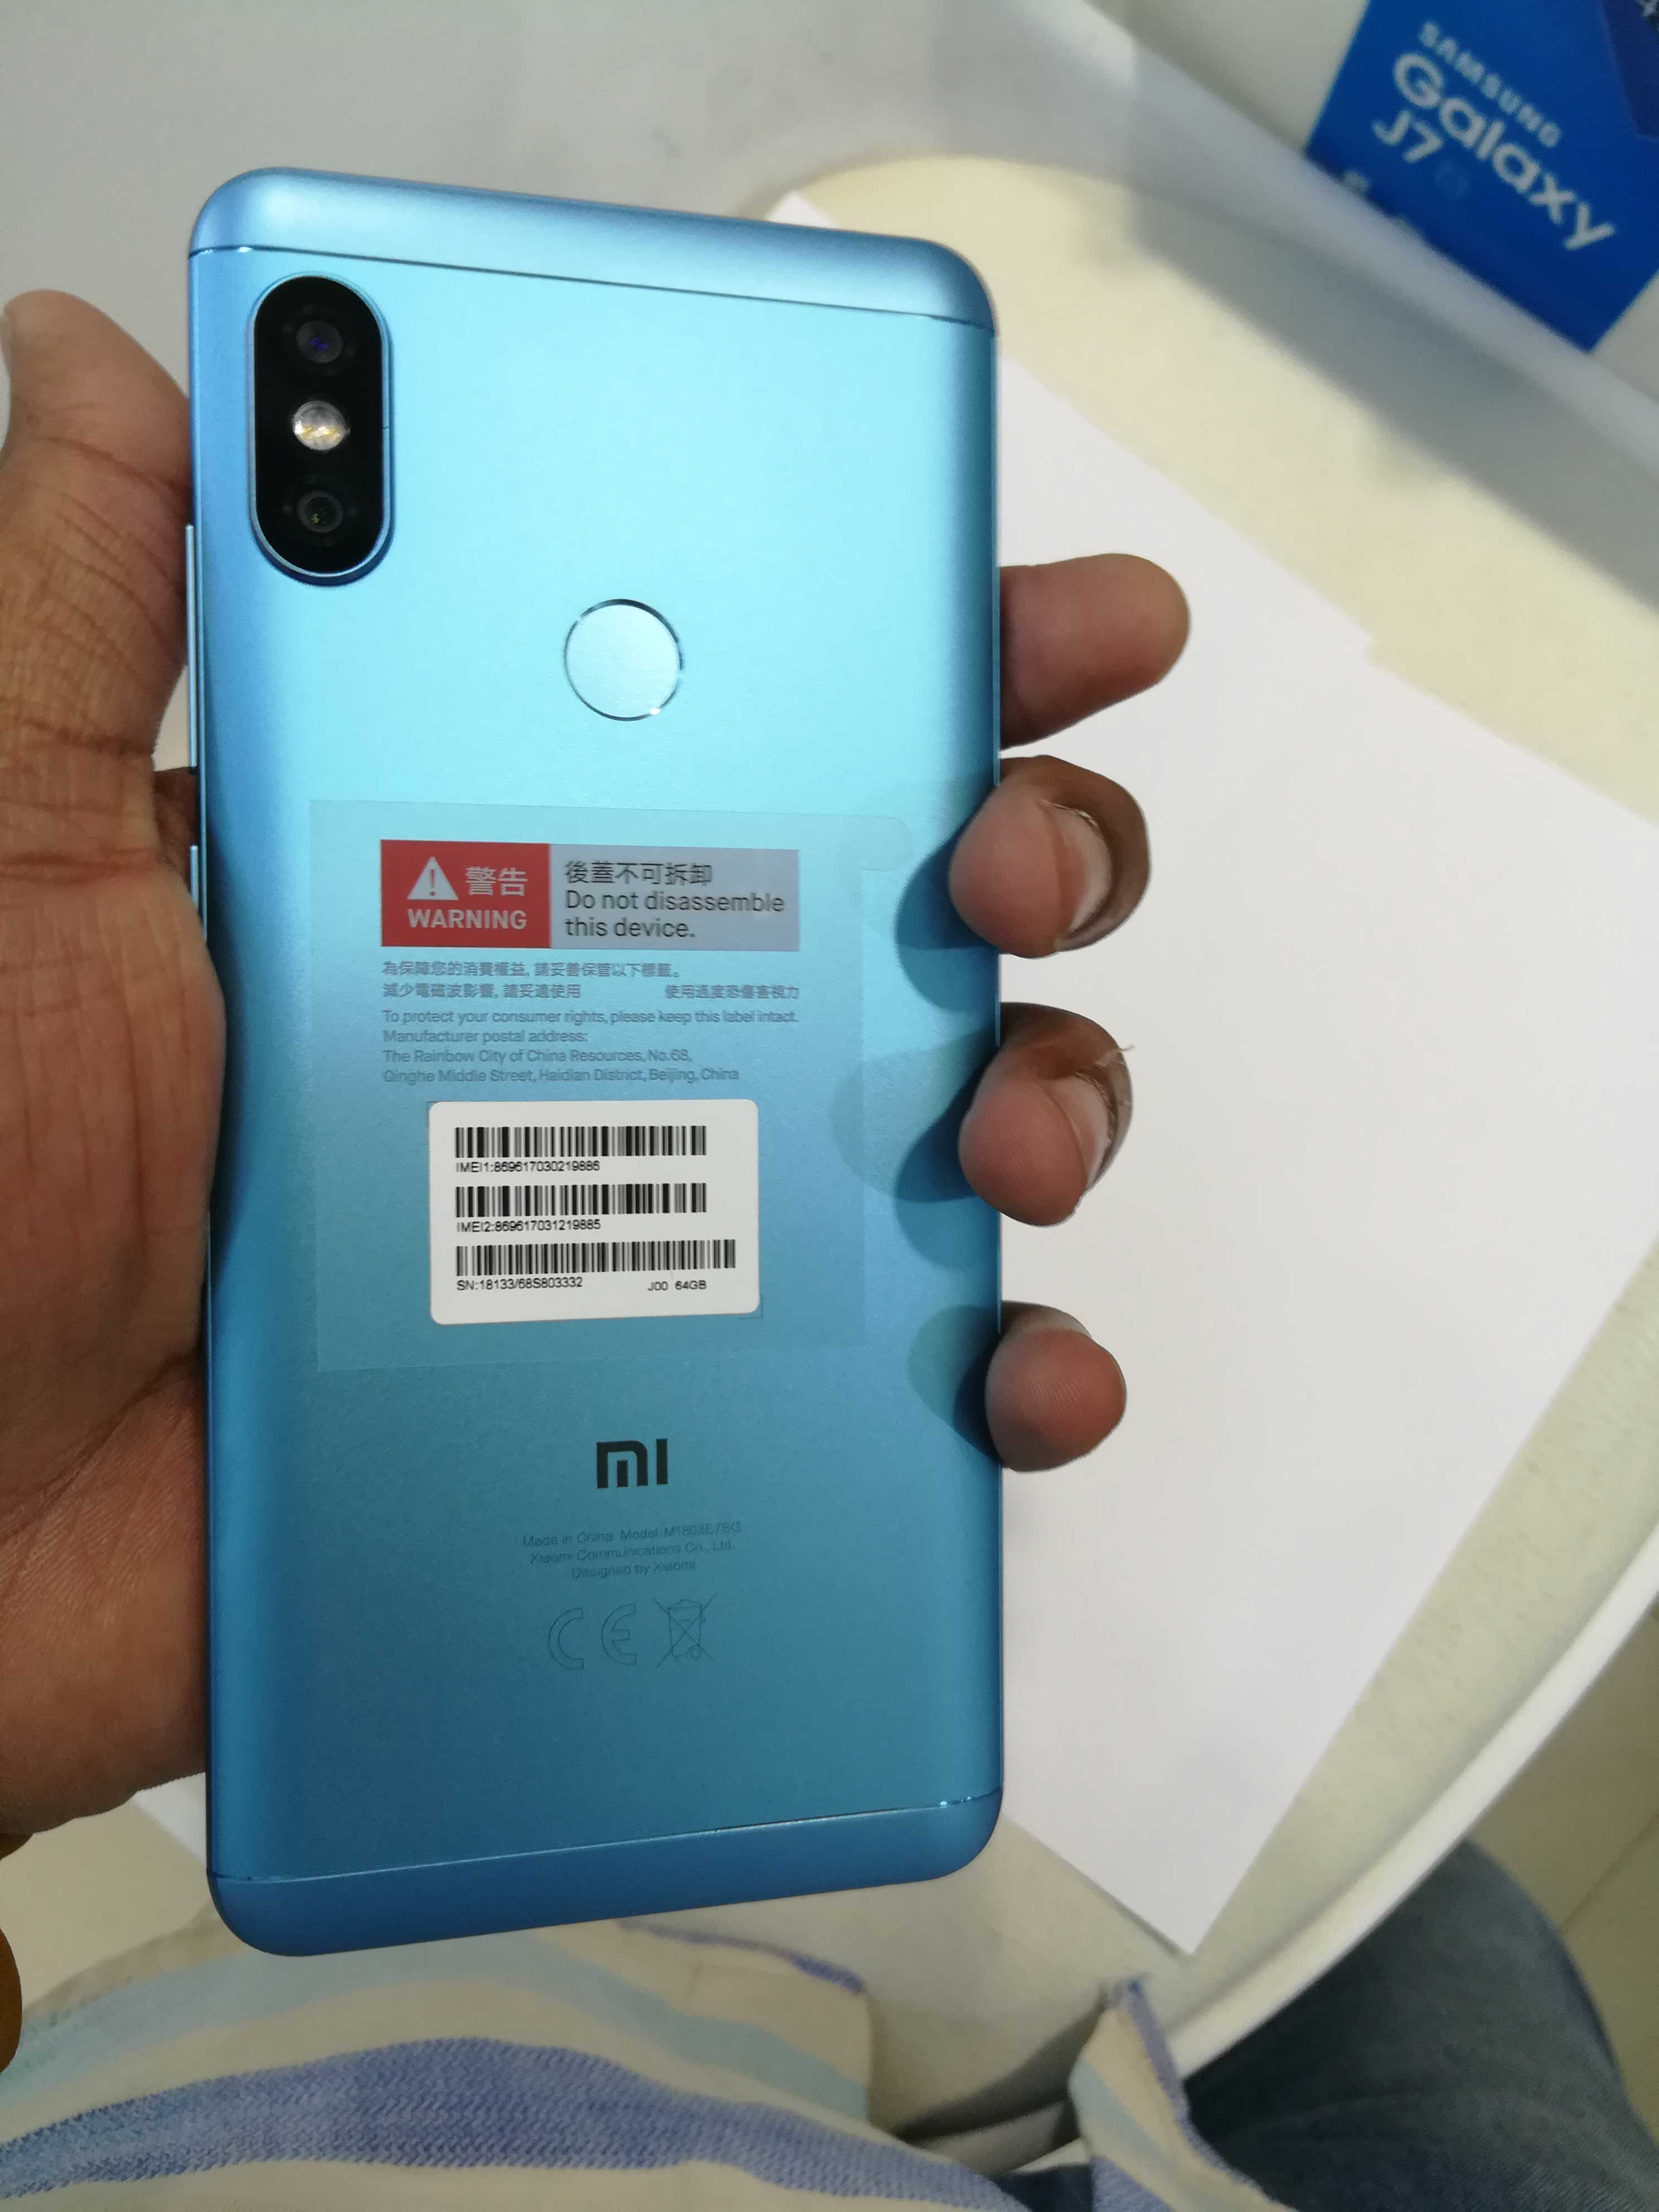 MI Redmi Note 5 AI Dual Camera (M1803E7SG ) Specifications and images